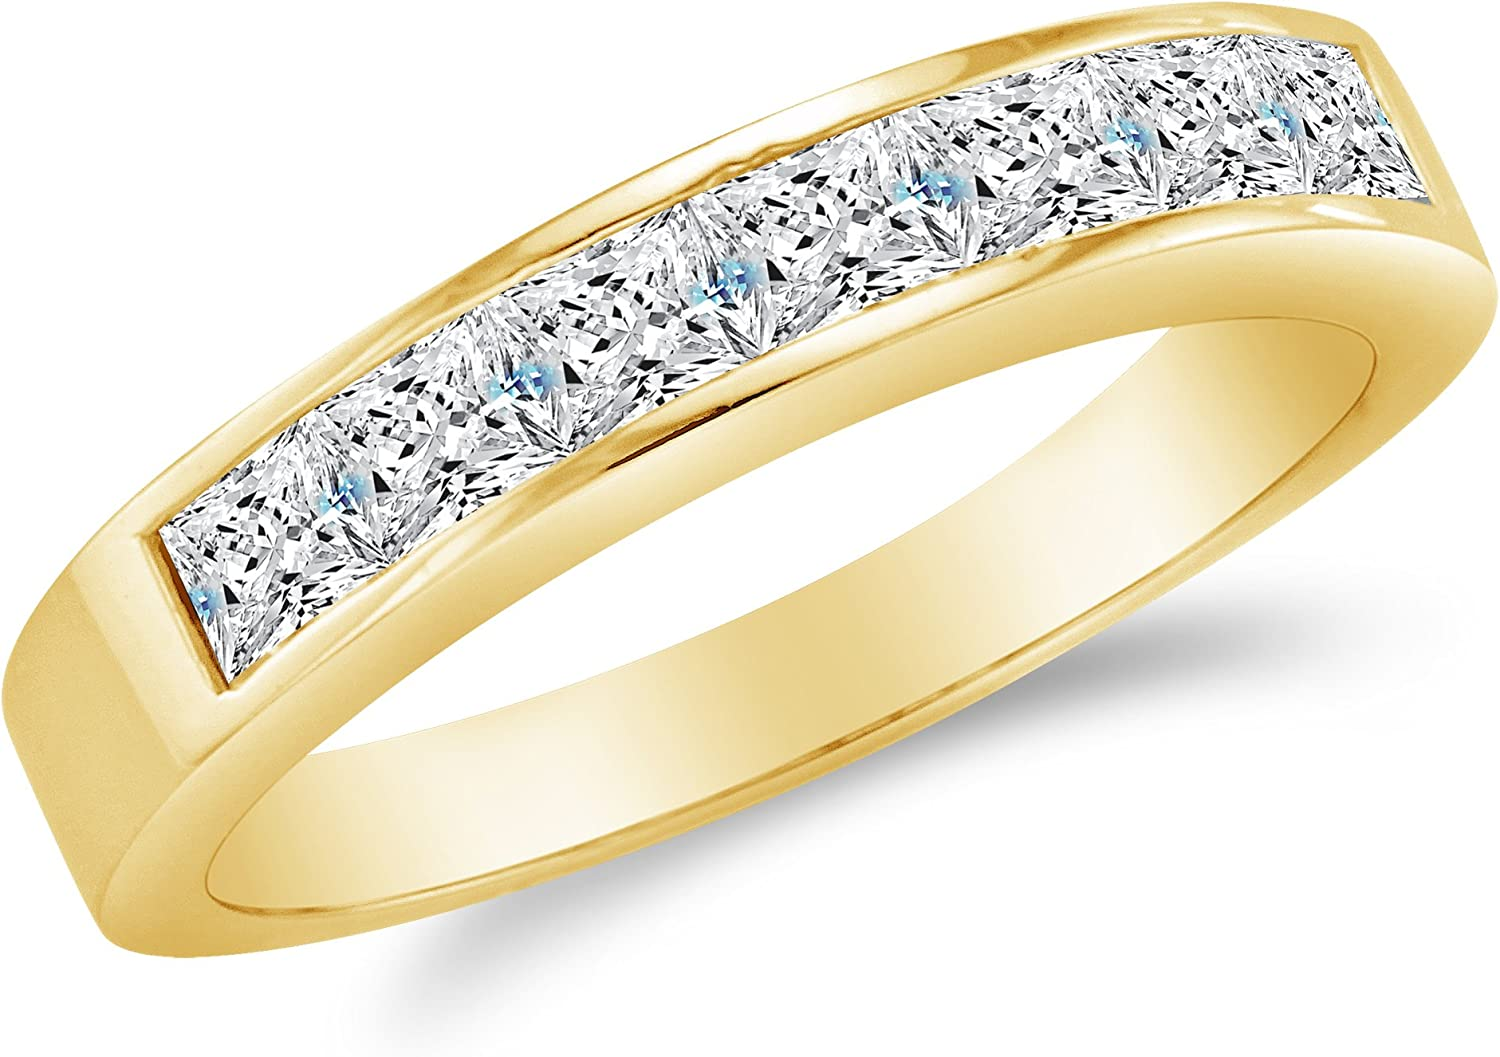 3mm Solid New arrival 14k White OR Yellow Gold Cut Princess Invisibl Long Beach Mall Channel